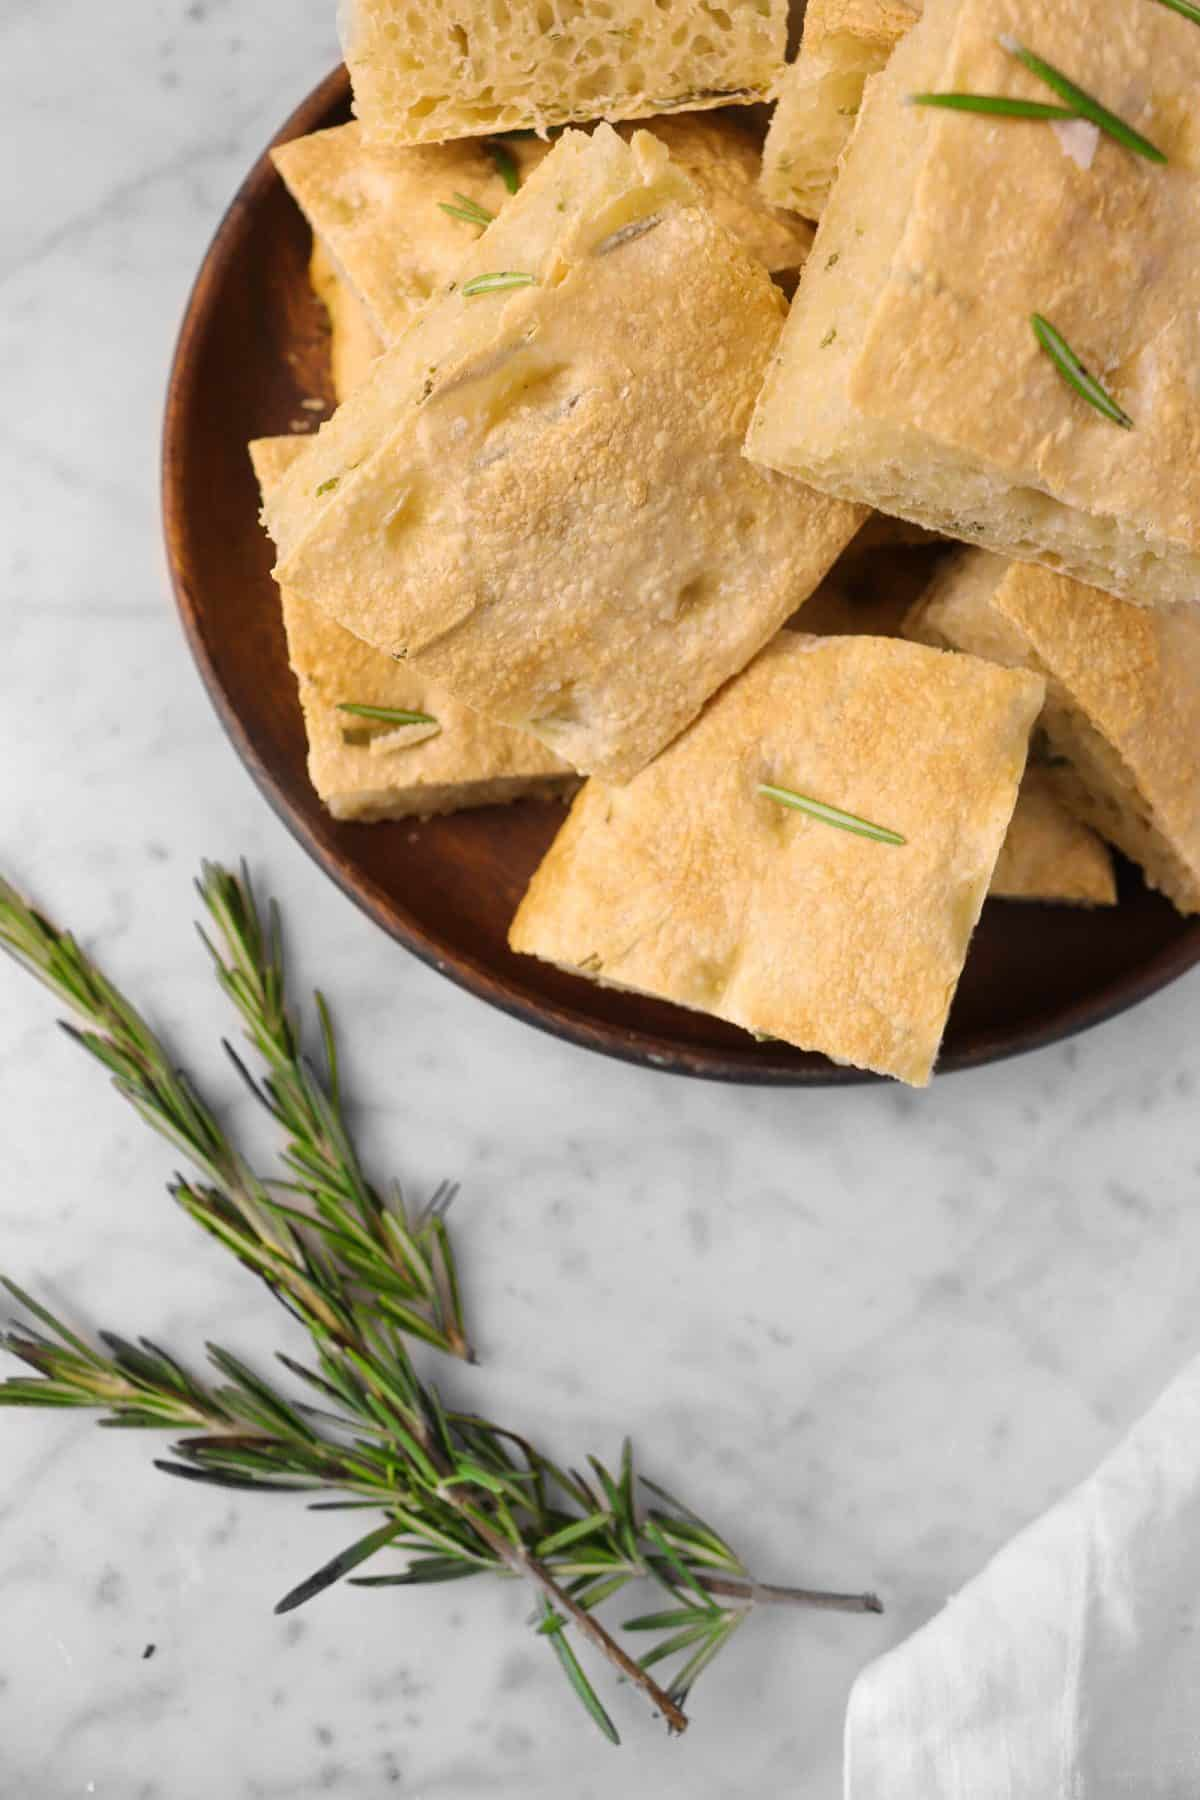 sliced focaccia on a wooden plate with sprigs of fresh rosemary